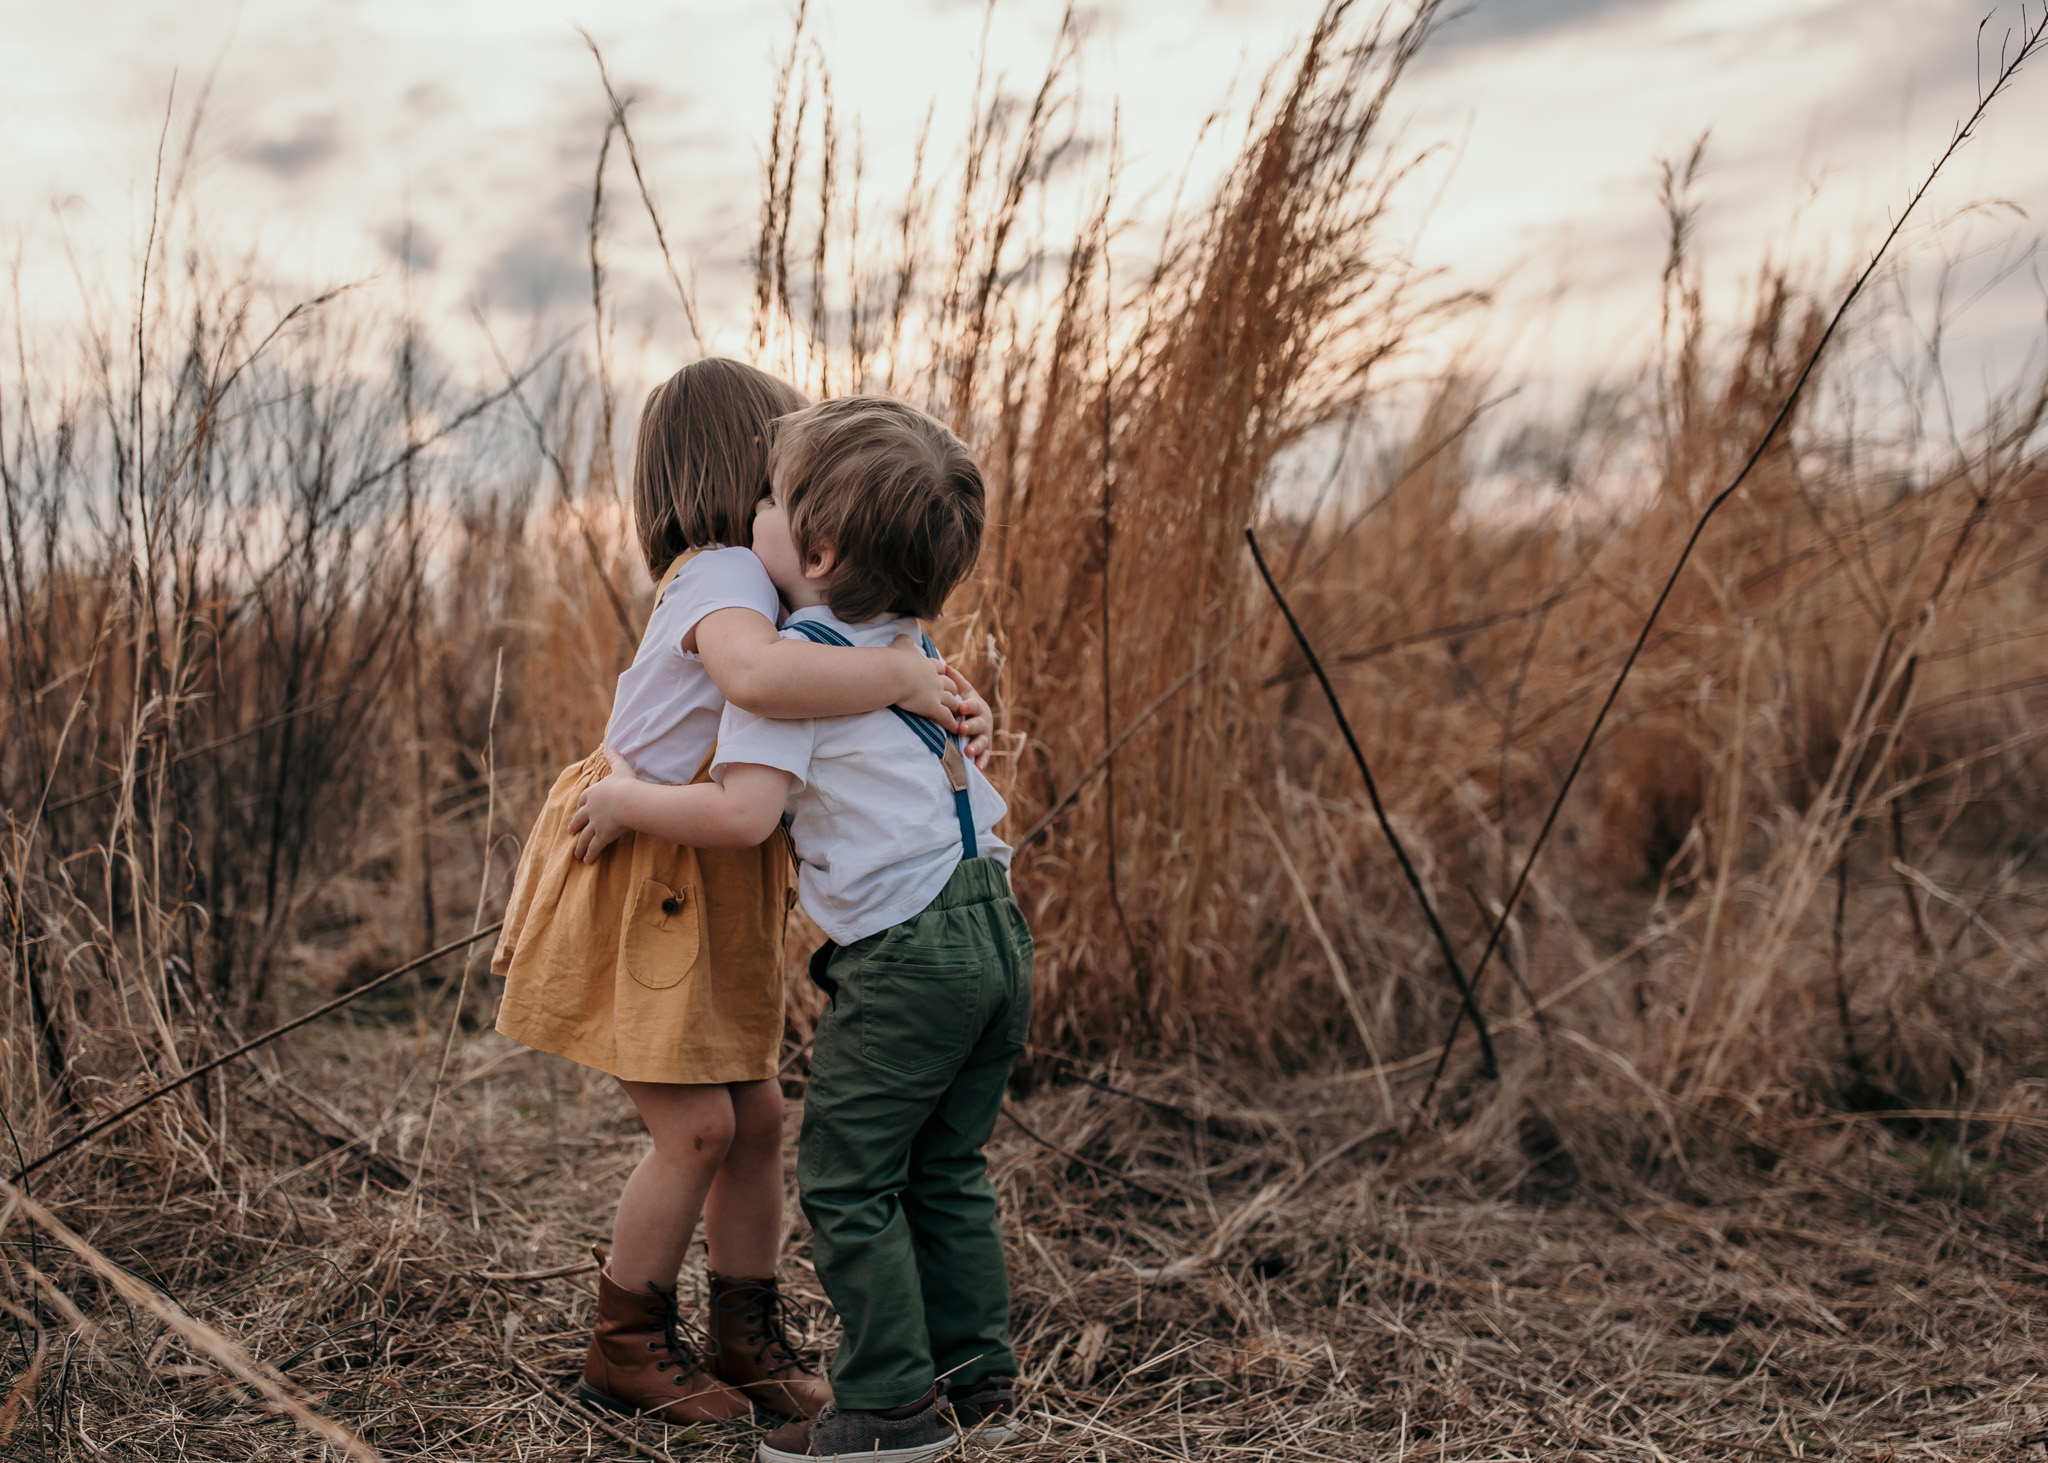 Little Boy and Girl Embracing